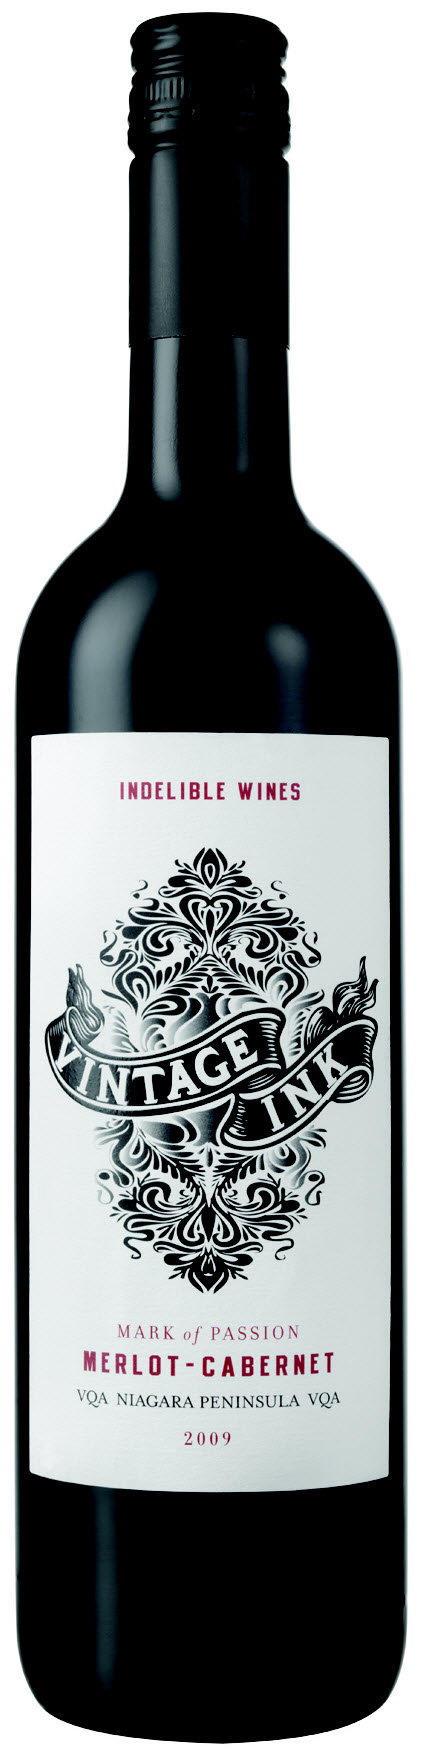 Vintage Ink Mark Of Passion Merlot/Cabernet 2009